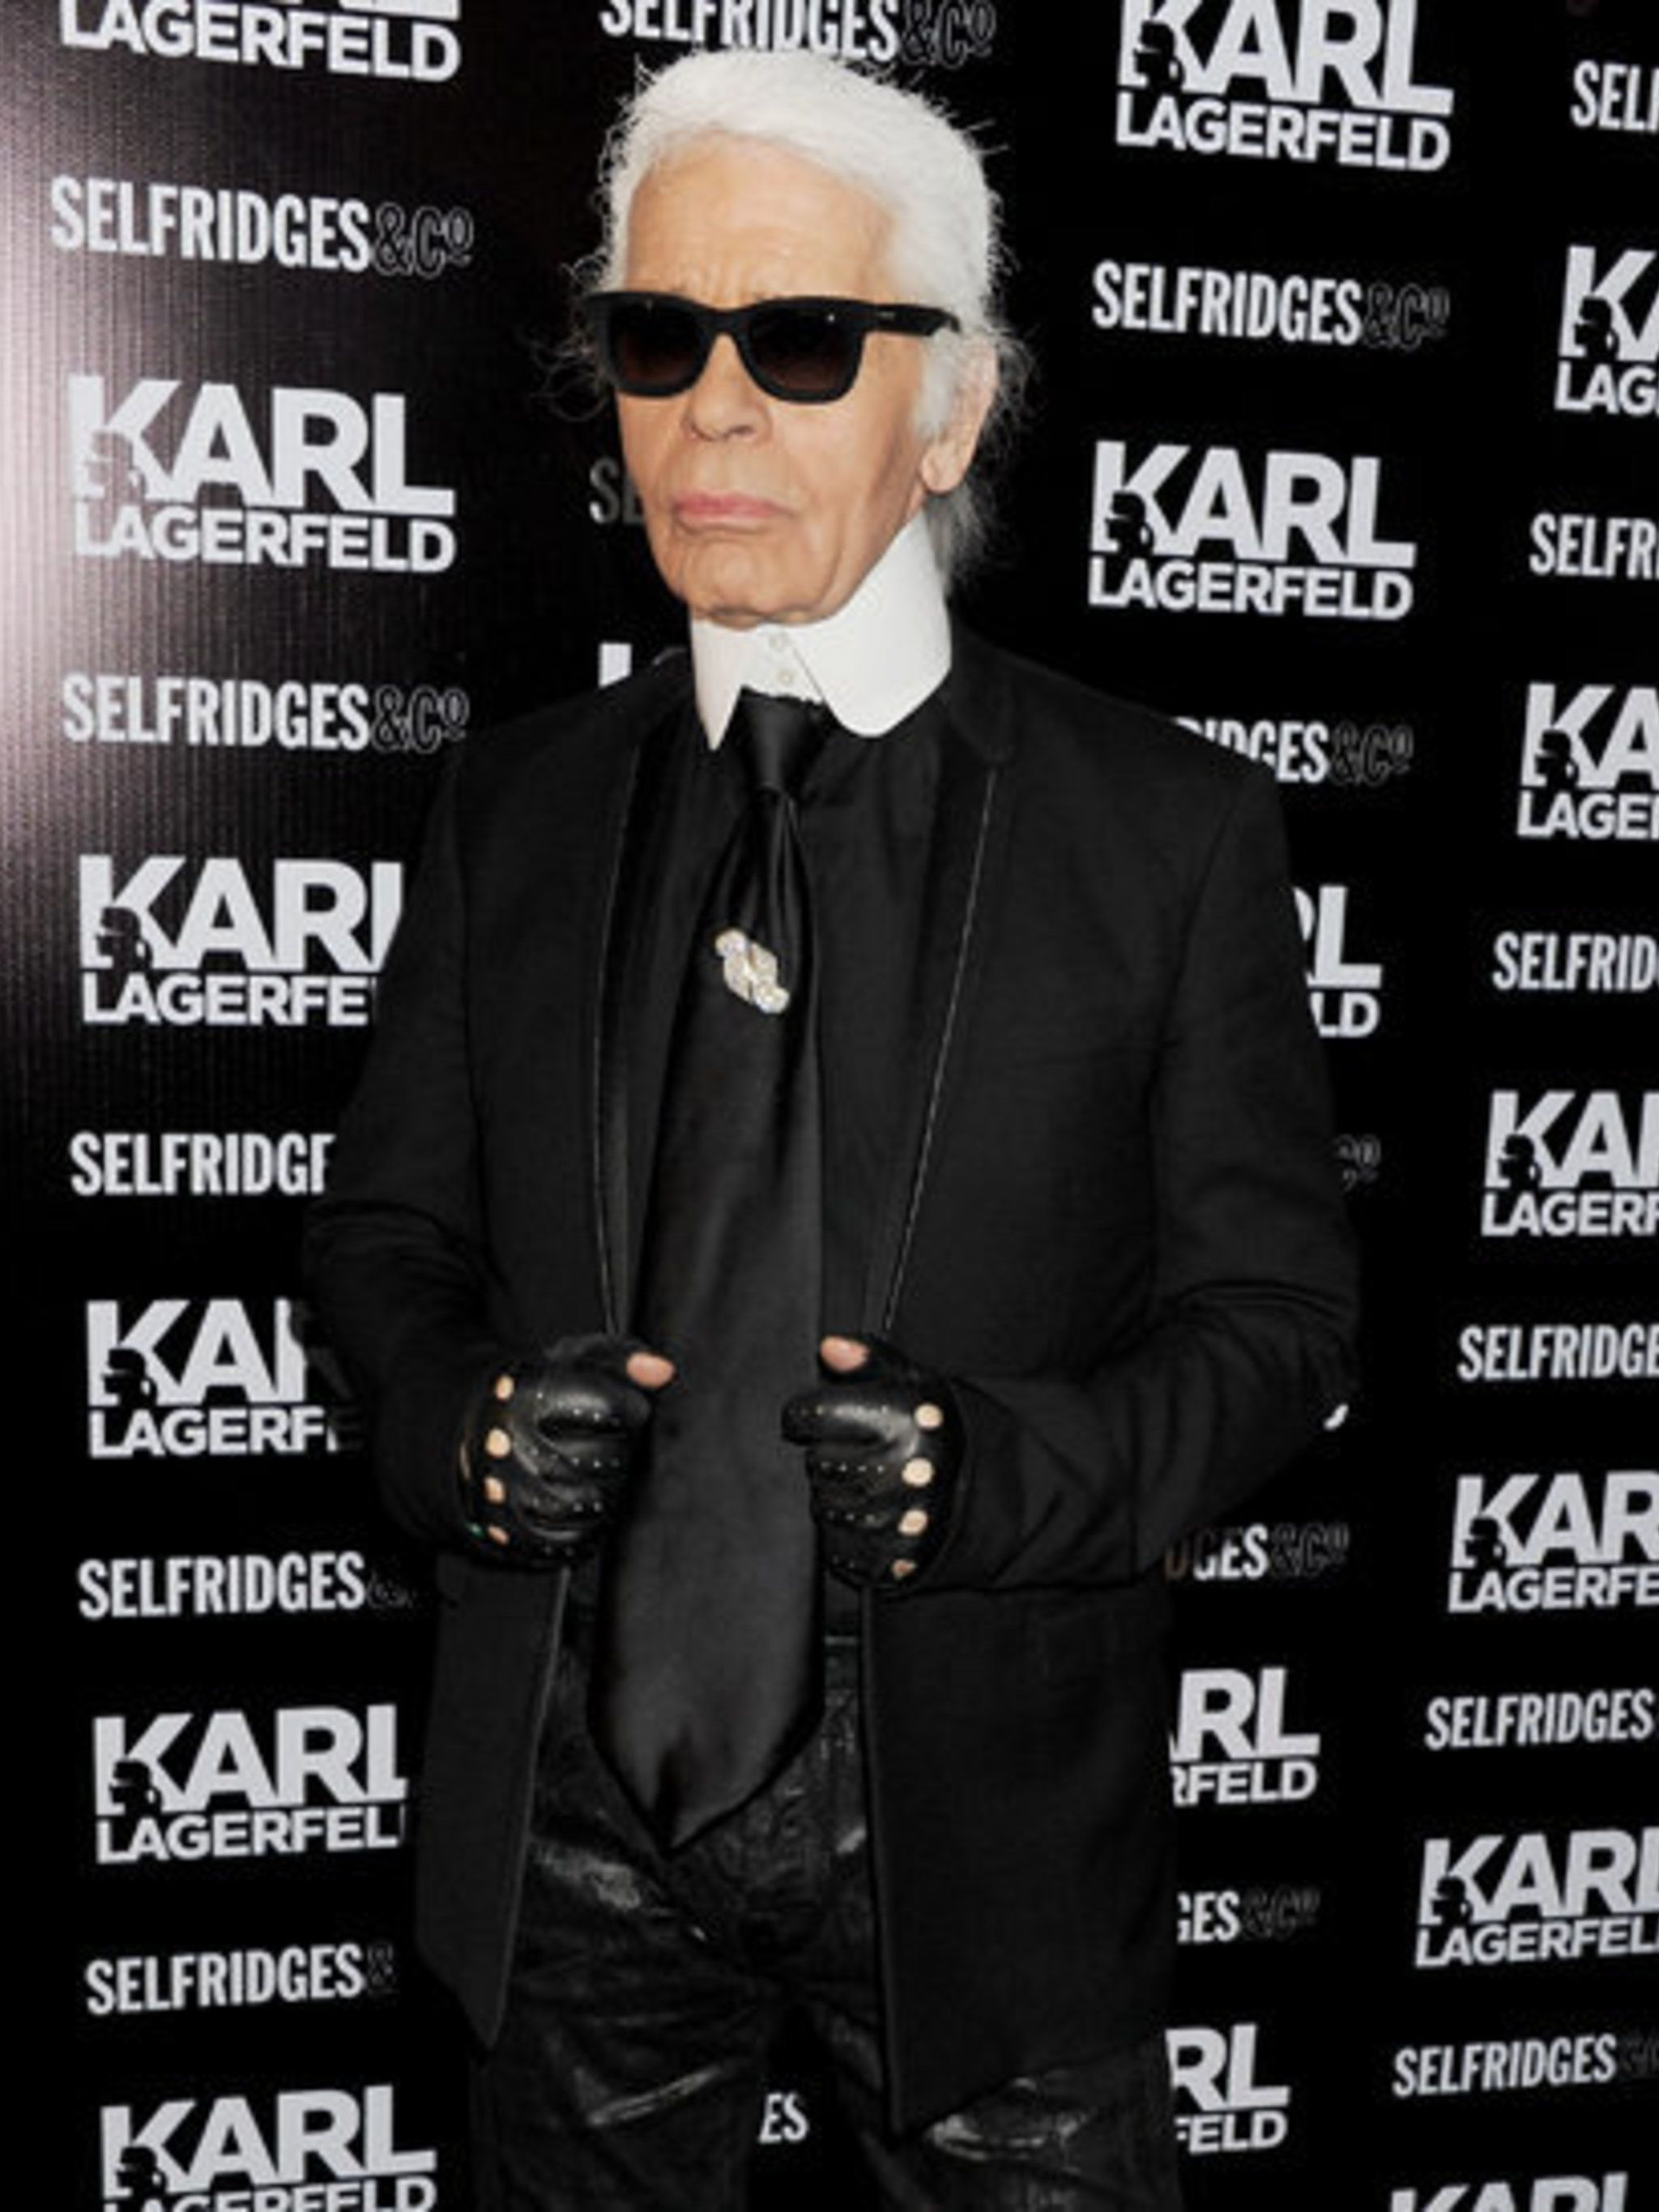 <p>Karl Lagerfeld at his Selfridges launch party</p>